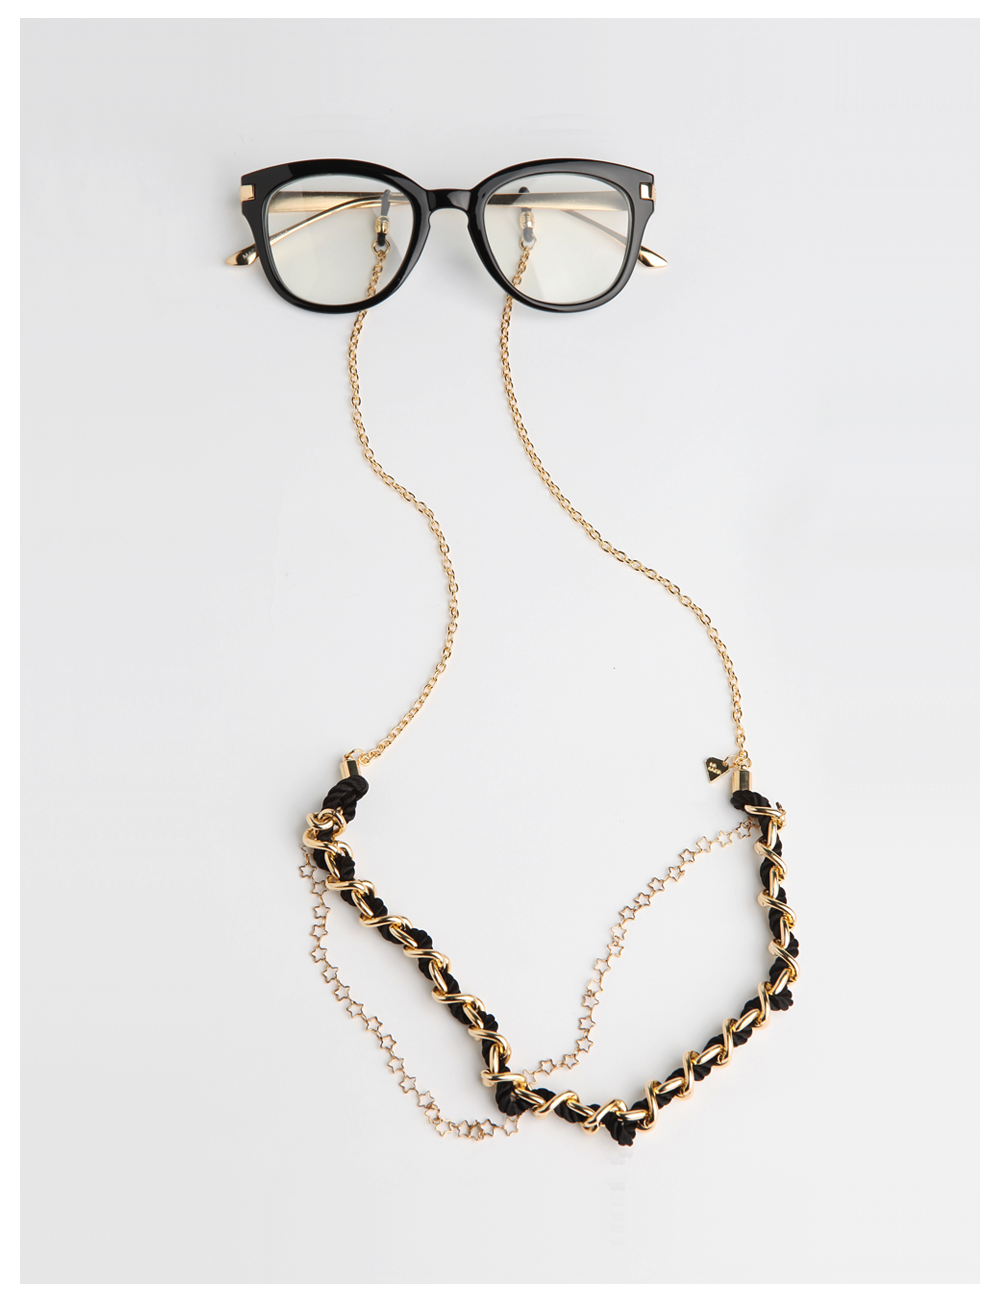 MODS TENDER / black_EYE GLASS CHAIN